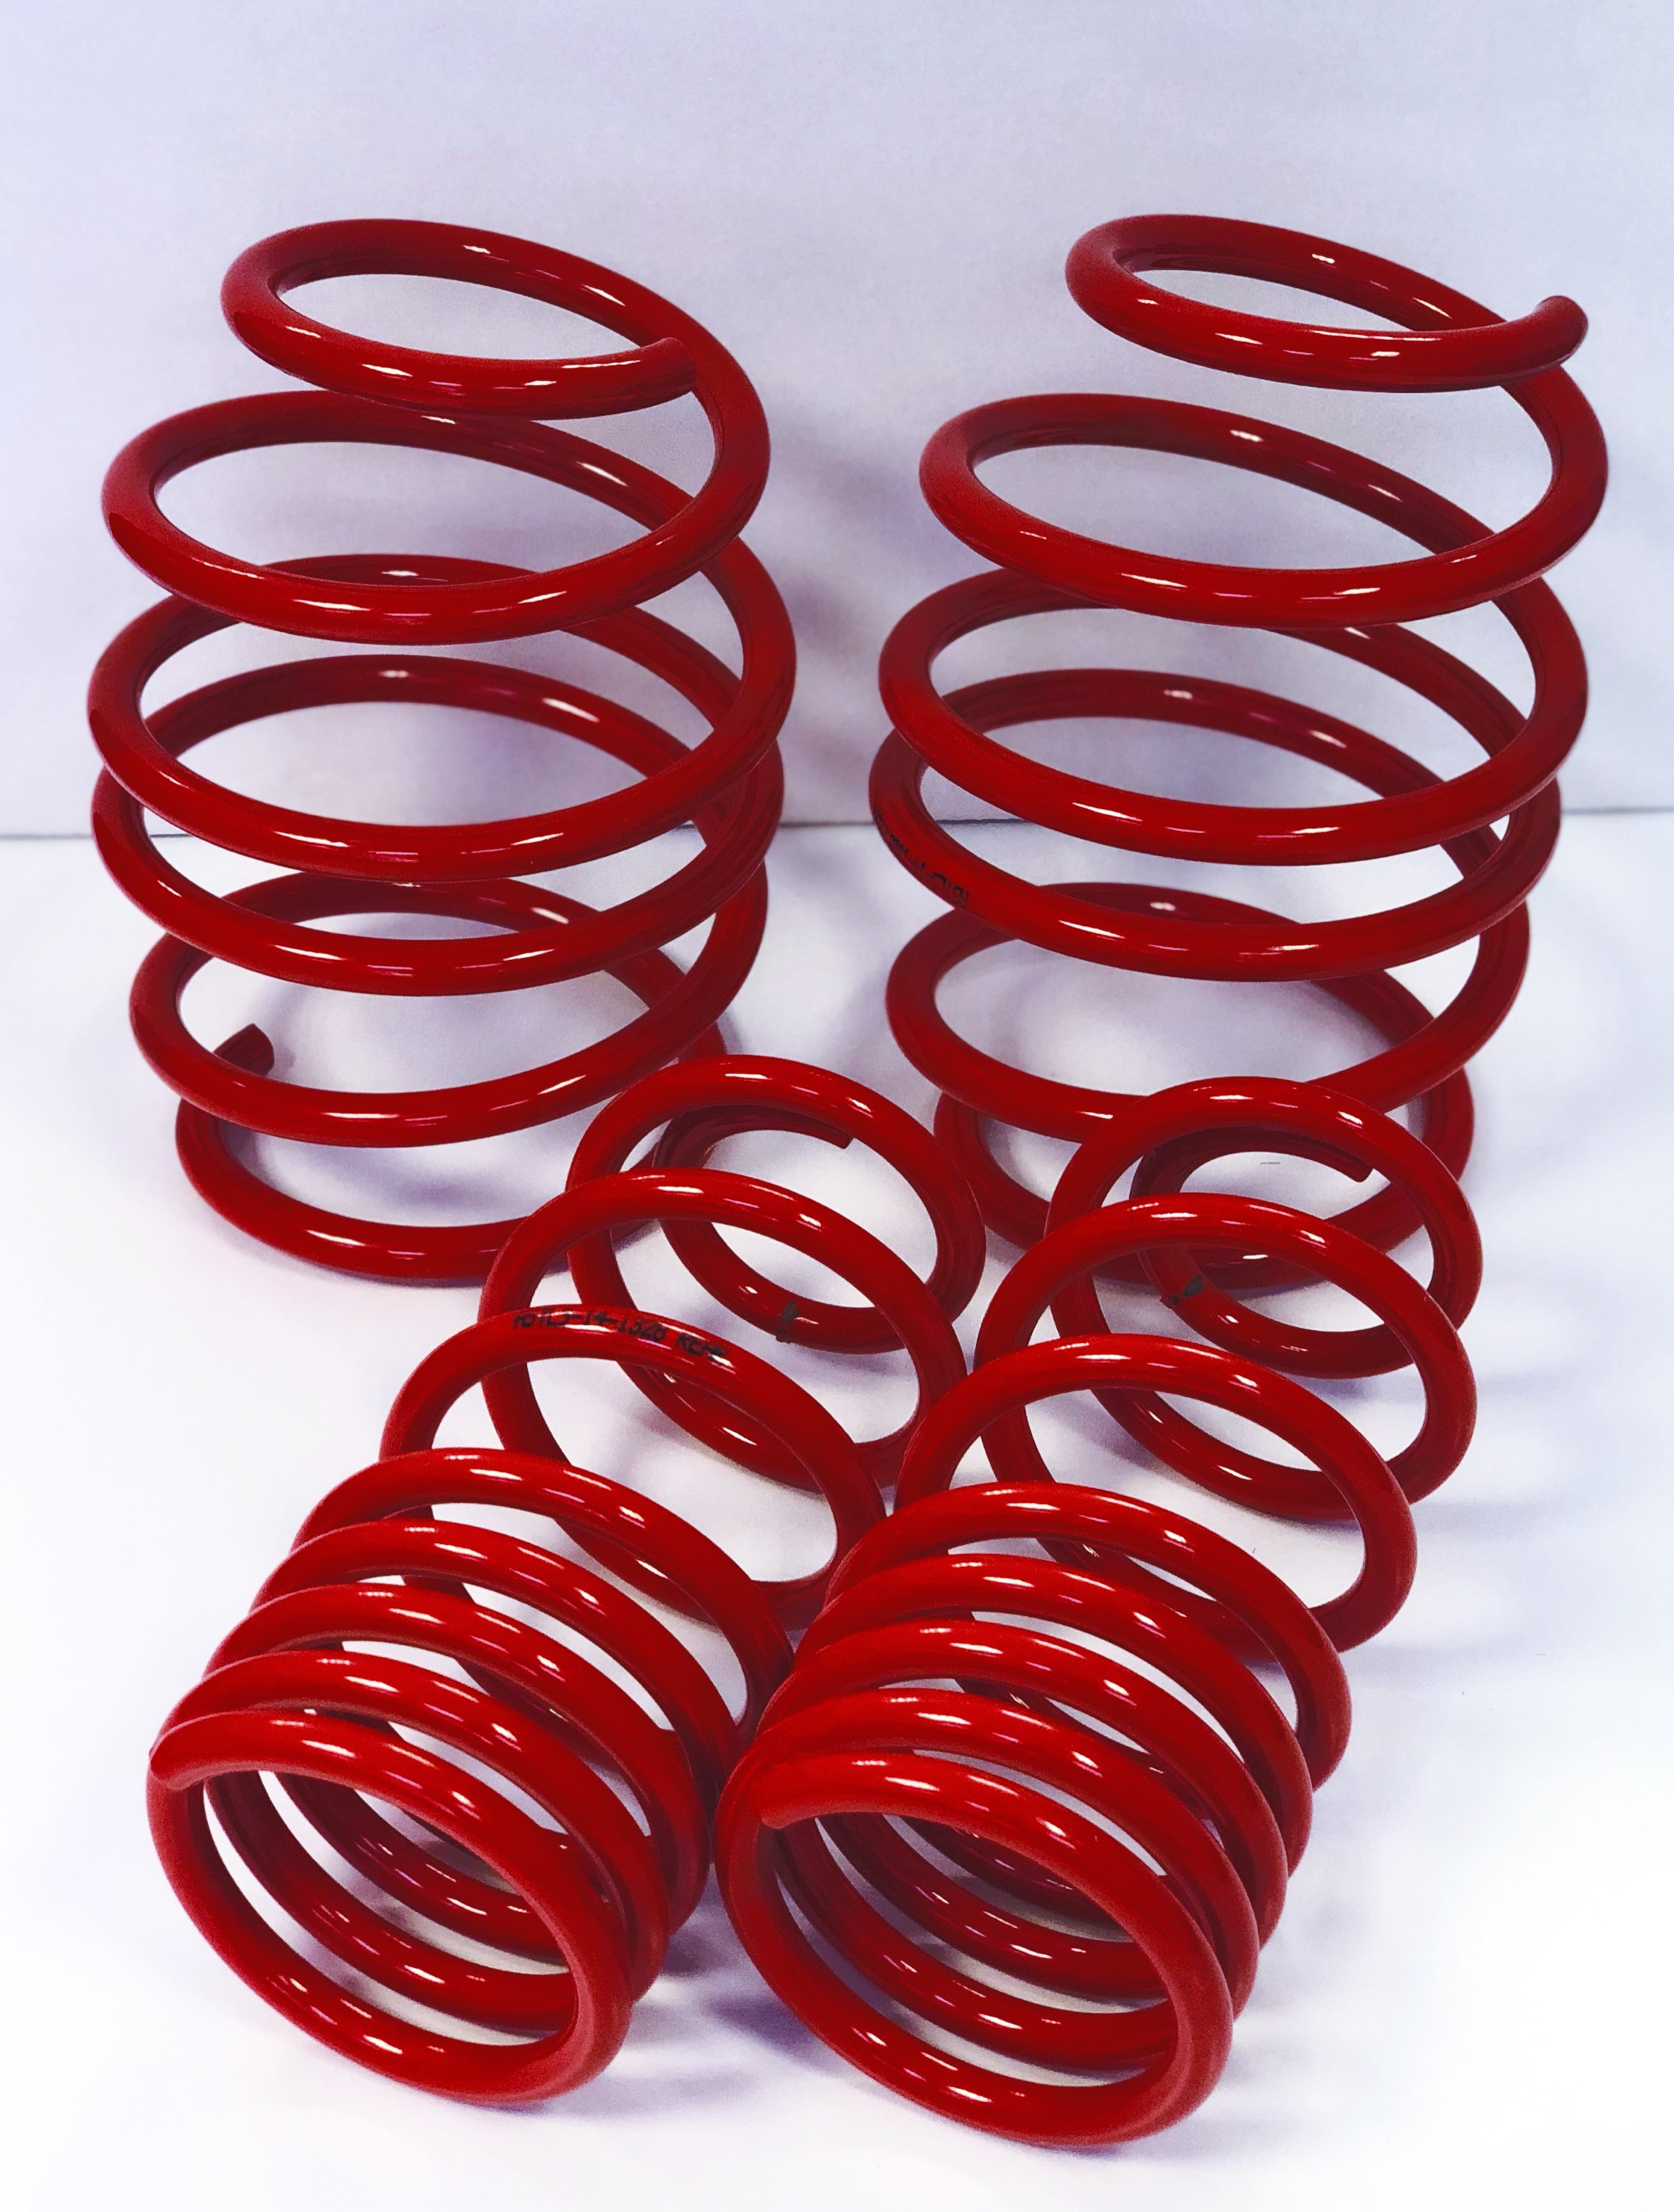 Peugeot 207 AST Suspension Lowering Springs 35MM